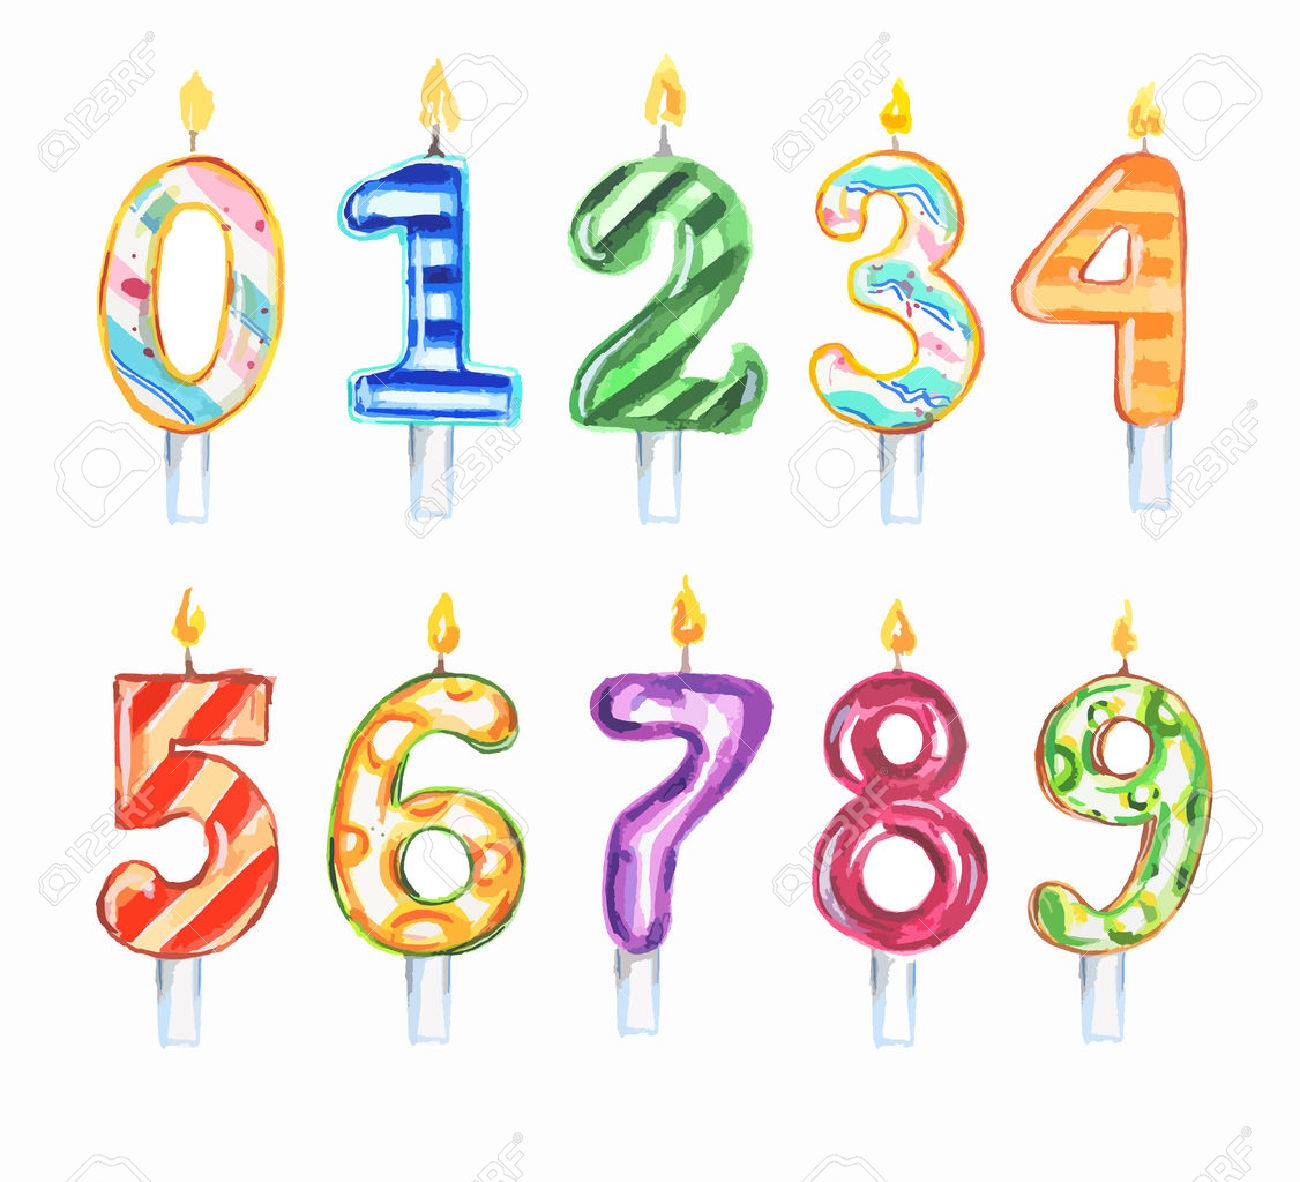 Watercolor birthday candles set. Numbers set. Colorful decoration for birthday, anniversary cake. - 60940240